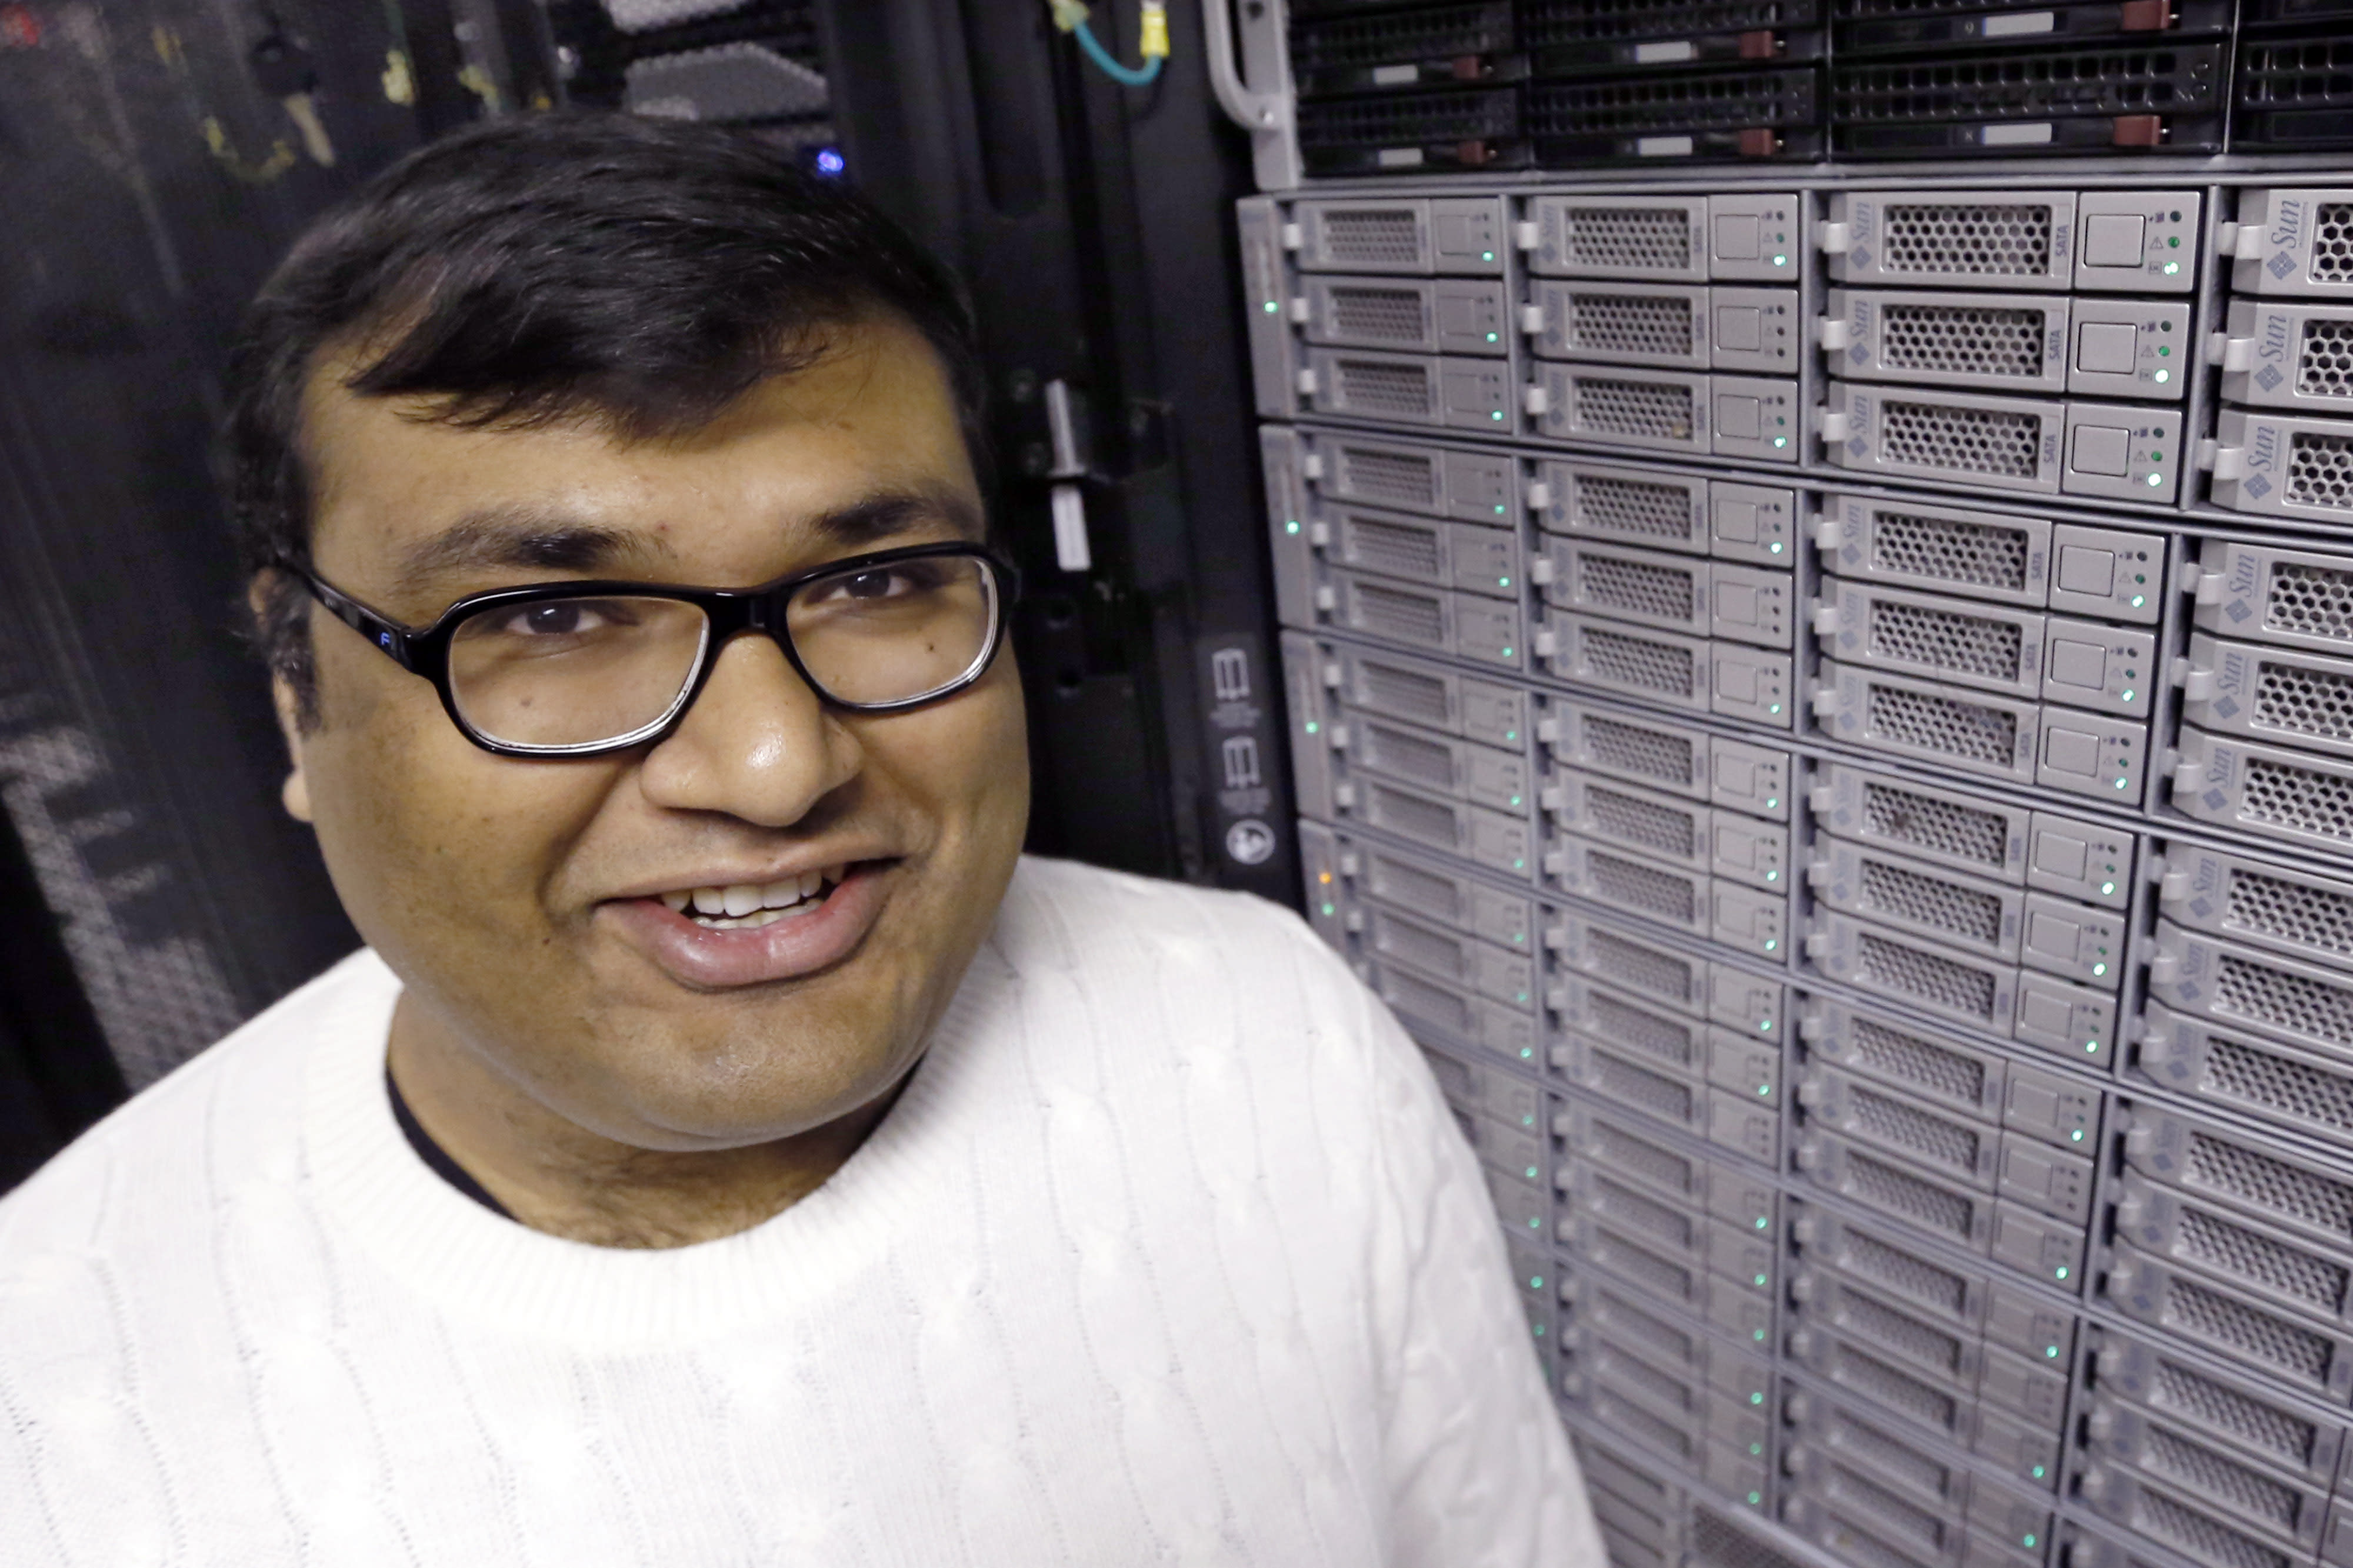 In this Thursday, Nov. 21, 2013 photo, Abhinav Gupta stands near one of the computer clusters used in his research at one of the computer server areas on campus at Carnegie Mellon University in Pittsburgh. The school is letting hundreds of computers run constantly to scan millions of images off the Internet, and have the computers make connections on their own. The plan is to let the system run forever. (AP Photo/Keith Srakocic)